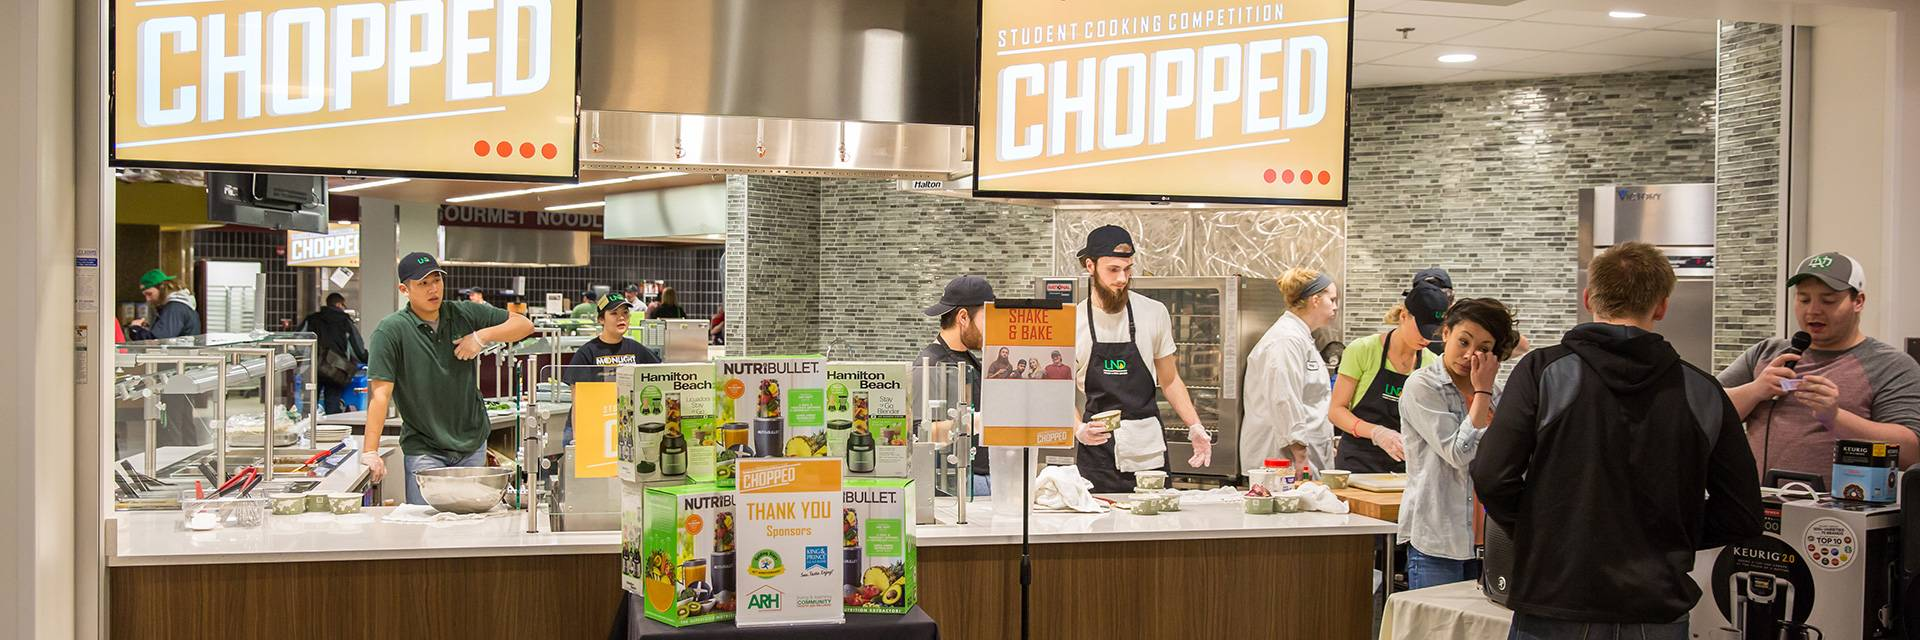 UND chopped competition tables